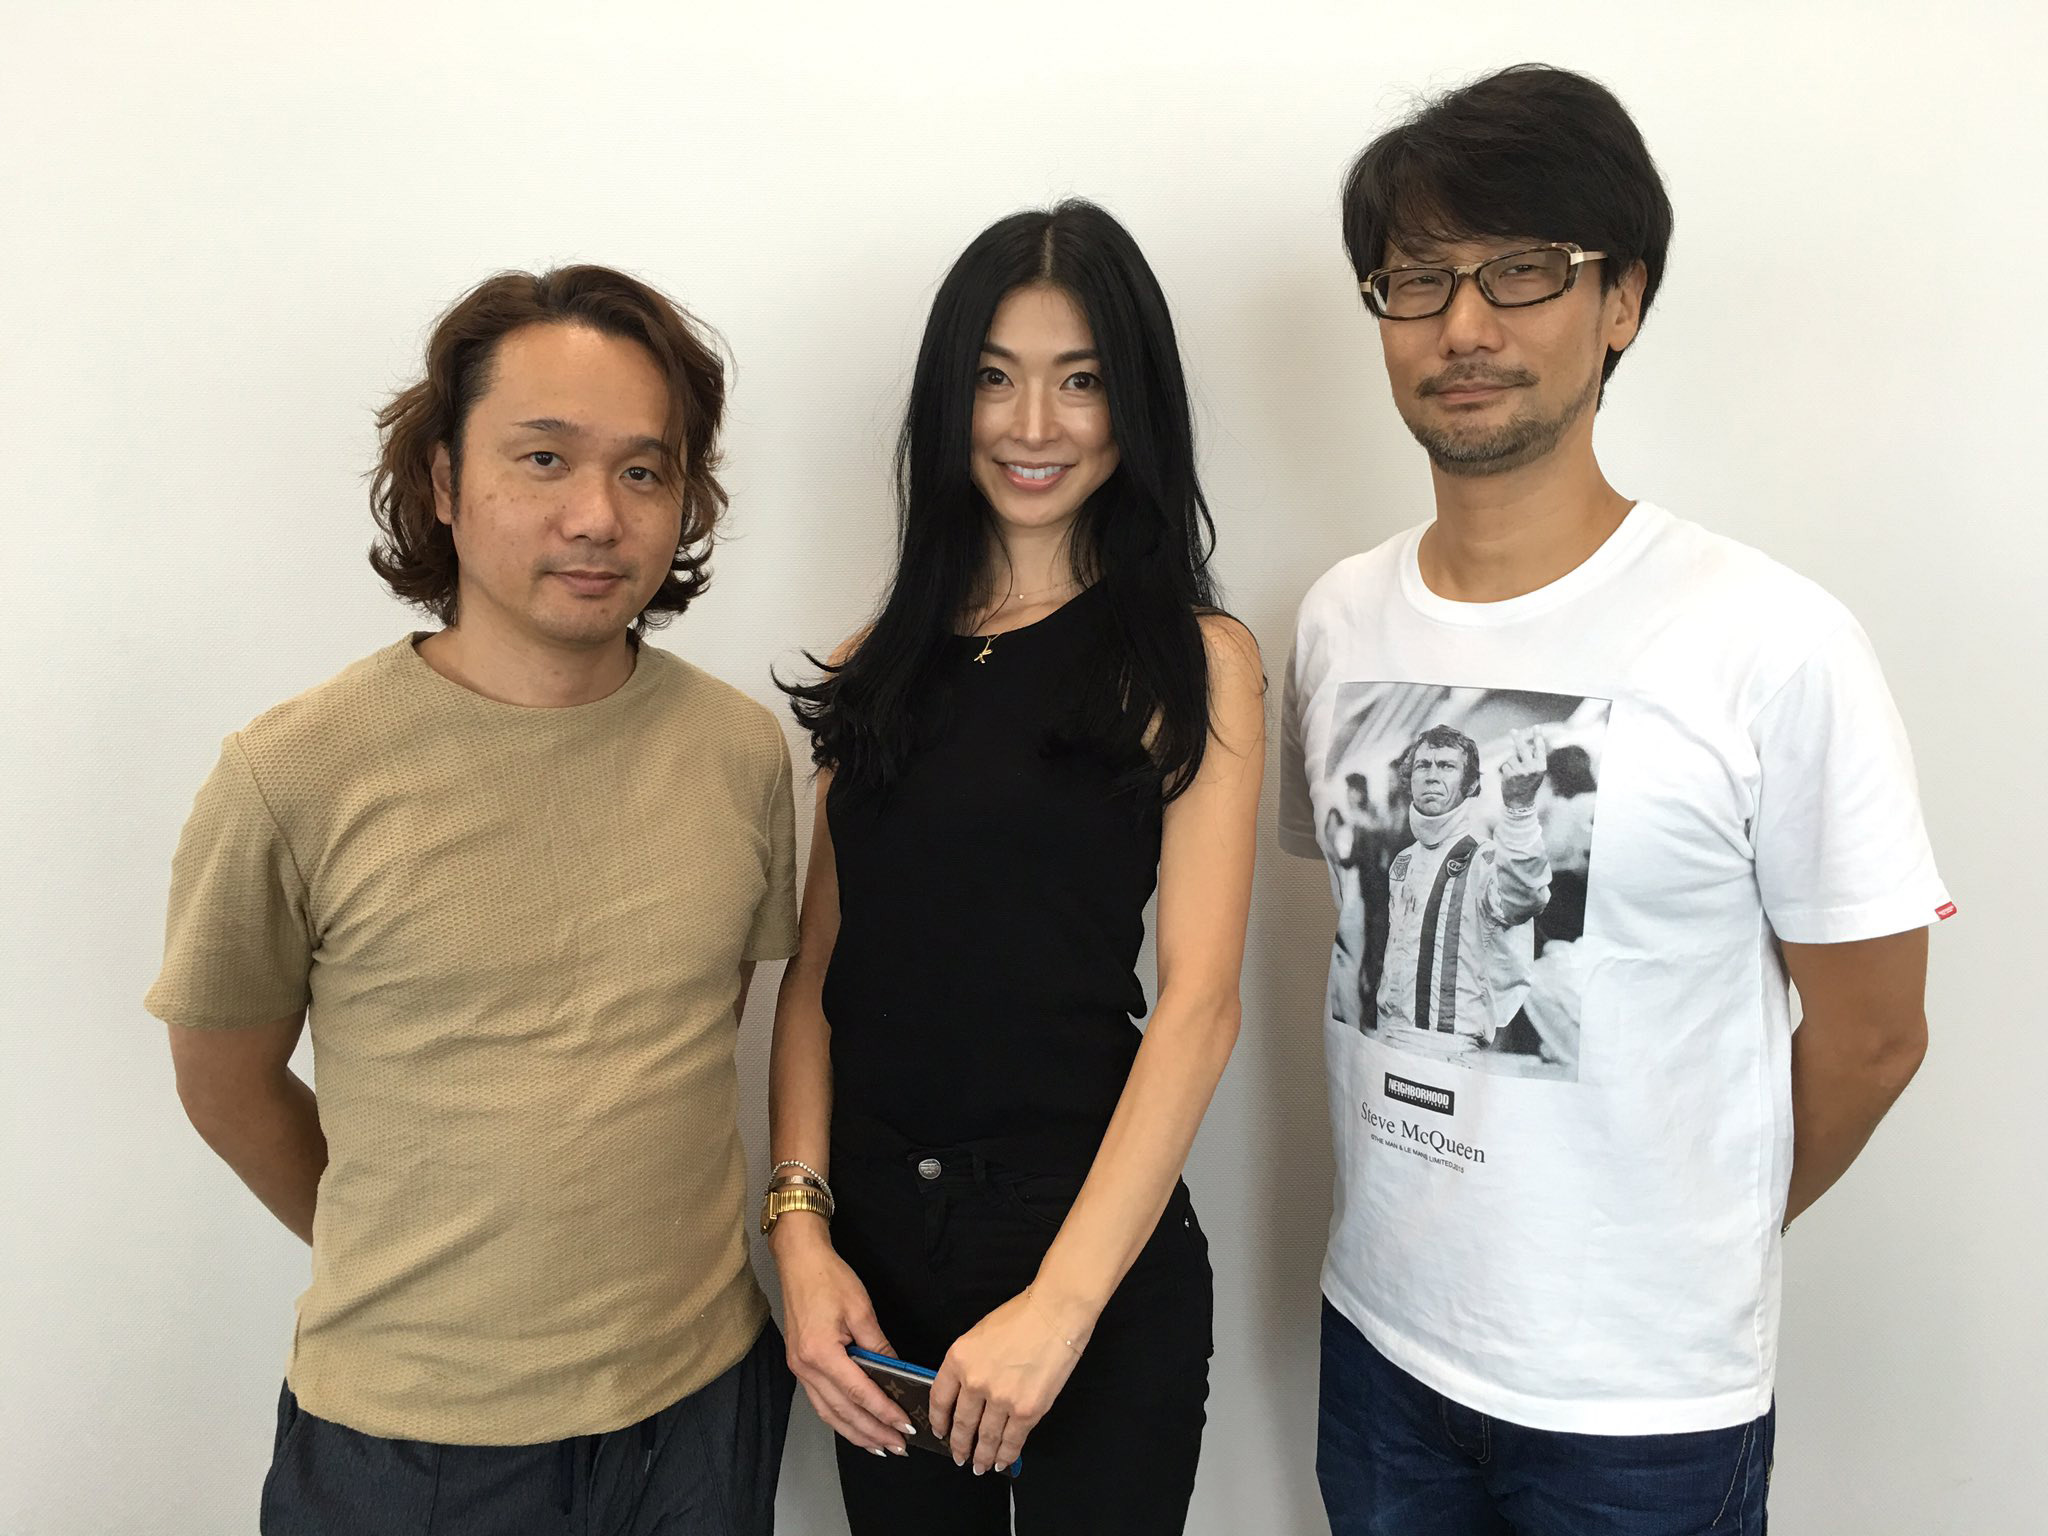 """Yoji Shinkawa & myself will do QA session at SIC stage 13:50 tomorrow with Yasuko Okajima as a facilitator."""